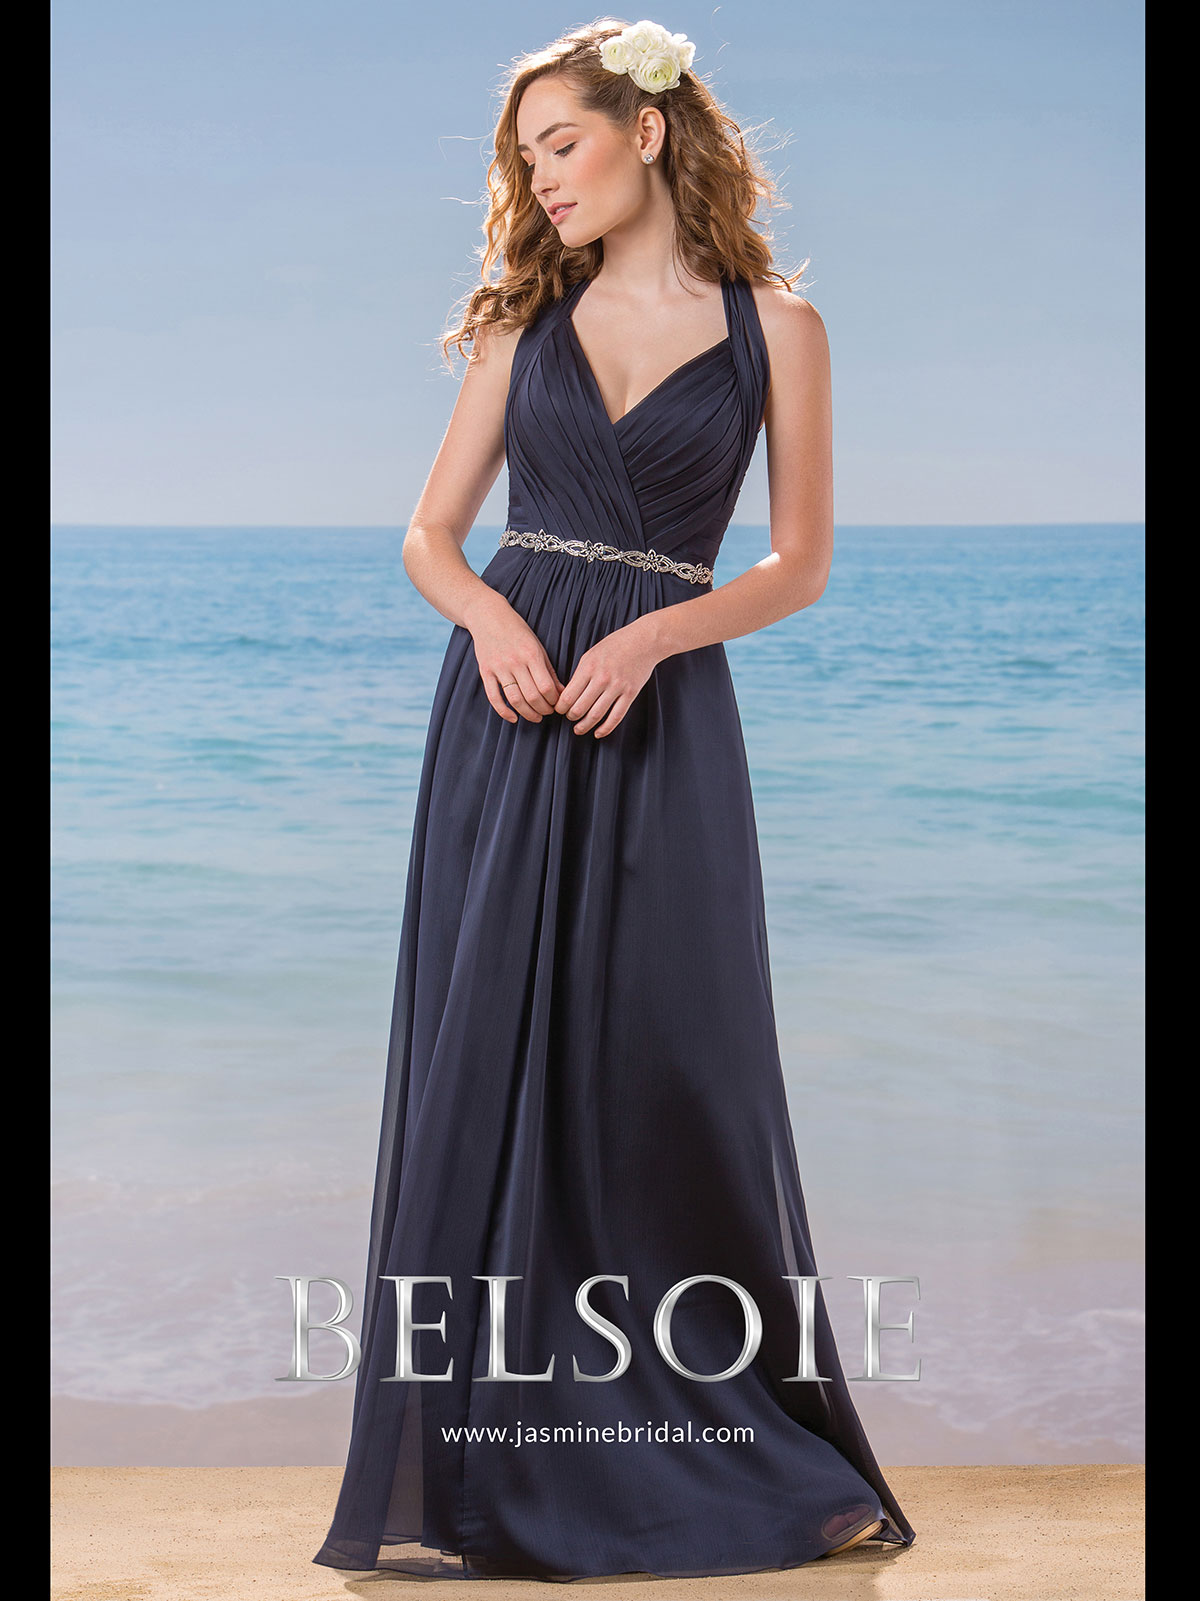 Belsoie l184007 halter chiffon a line bridesmaid dress belsoie l184007 halter pleated bridesmaid dress ombrellifo Image collections